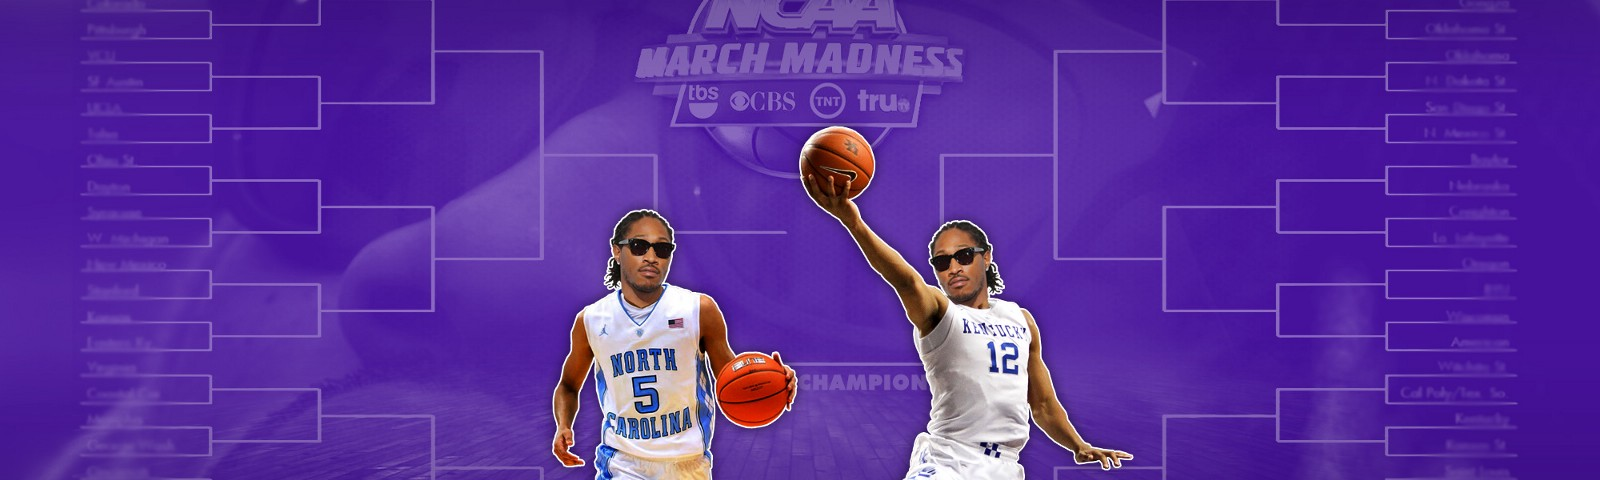 March Madness – Double Six Talk